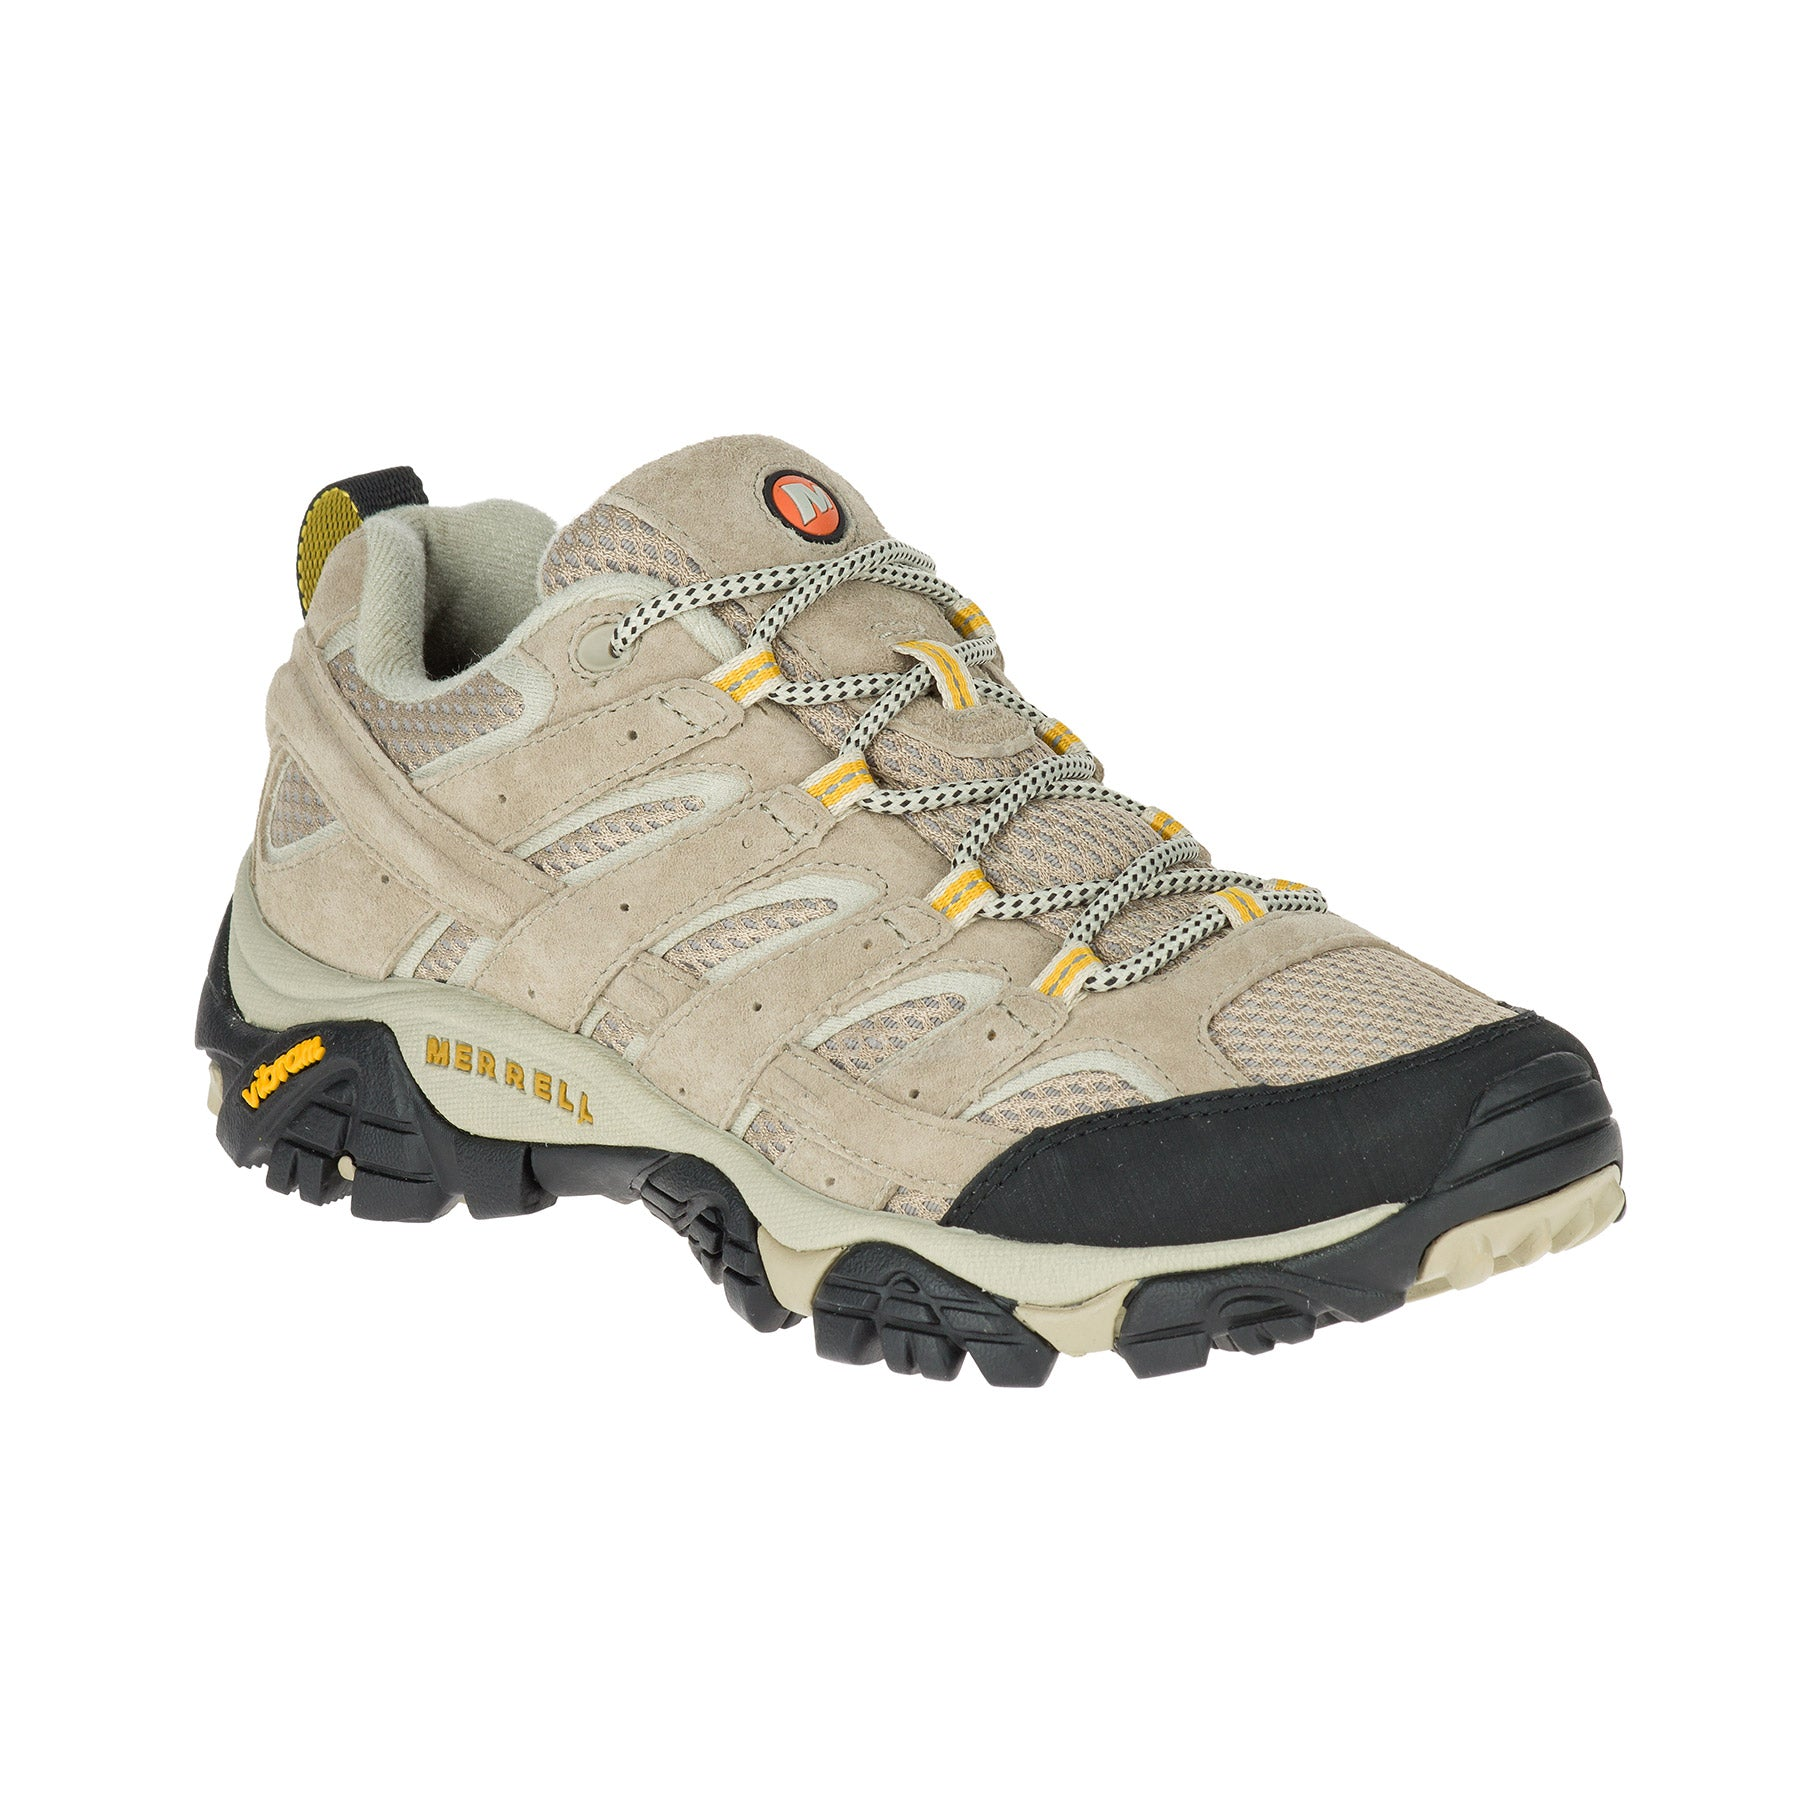 merrell moab 2 ventilator hiking shoe side view women's in colors tan and yellow